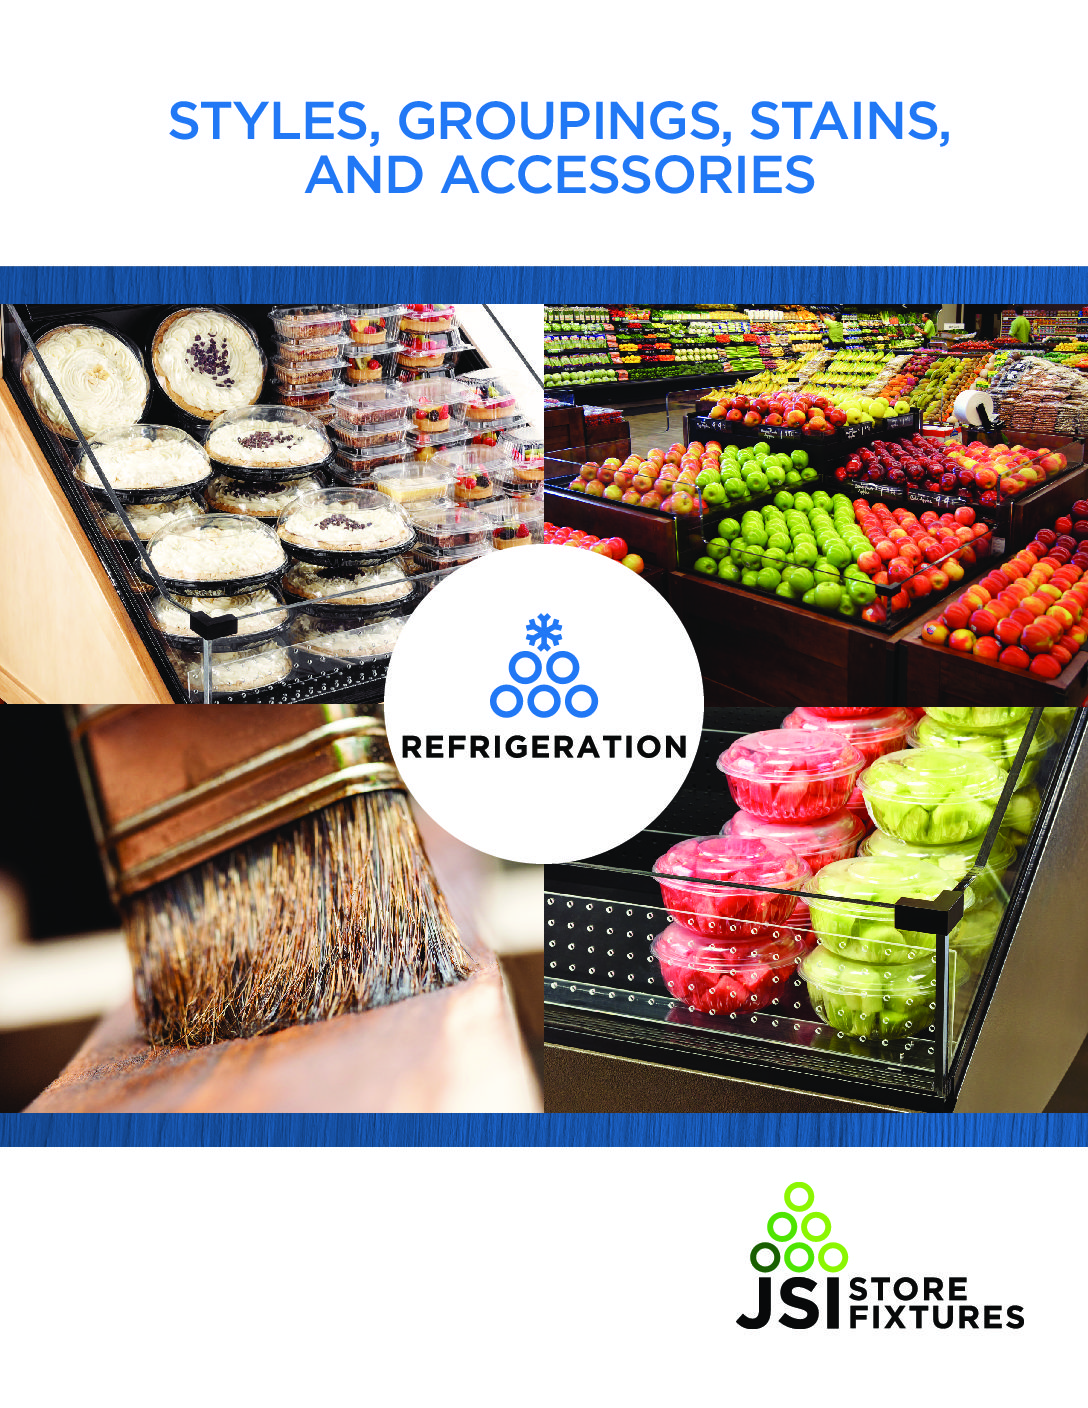 Refrigeration Stains & Accessories